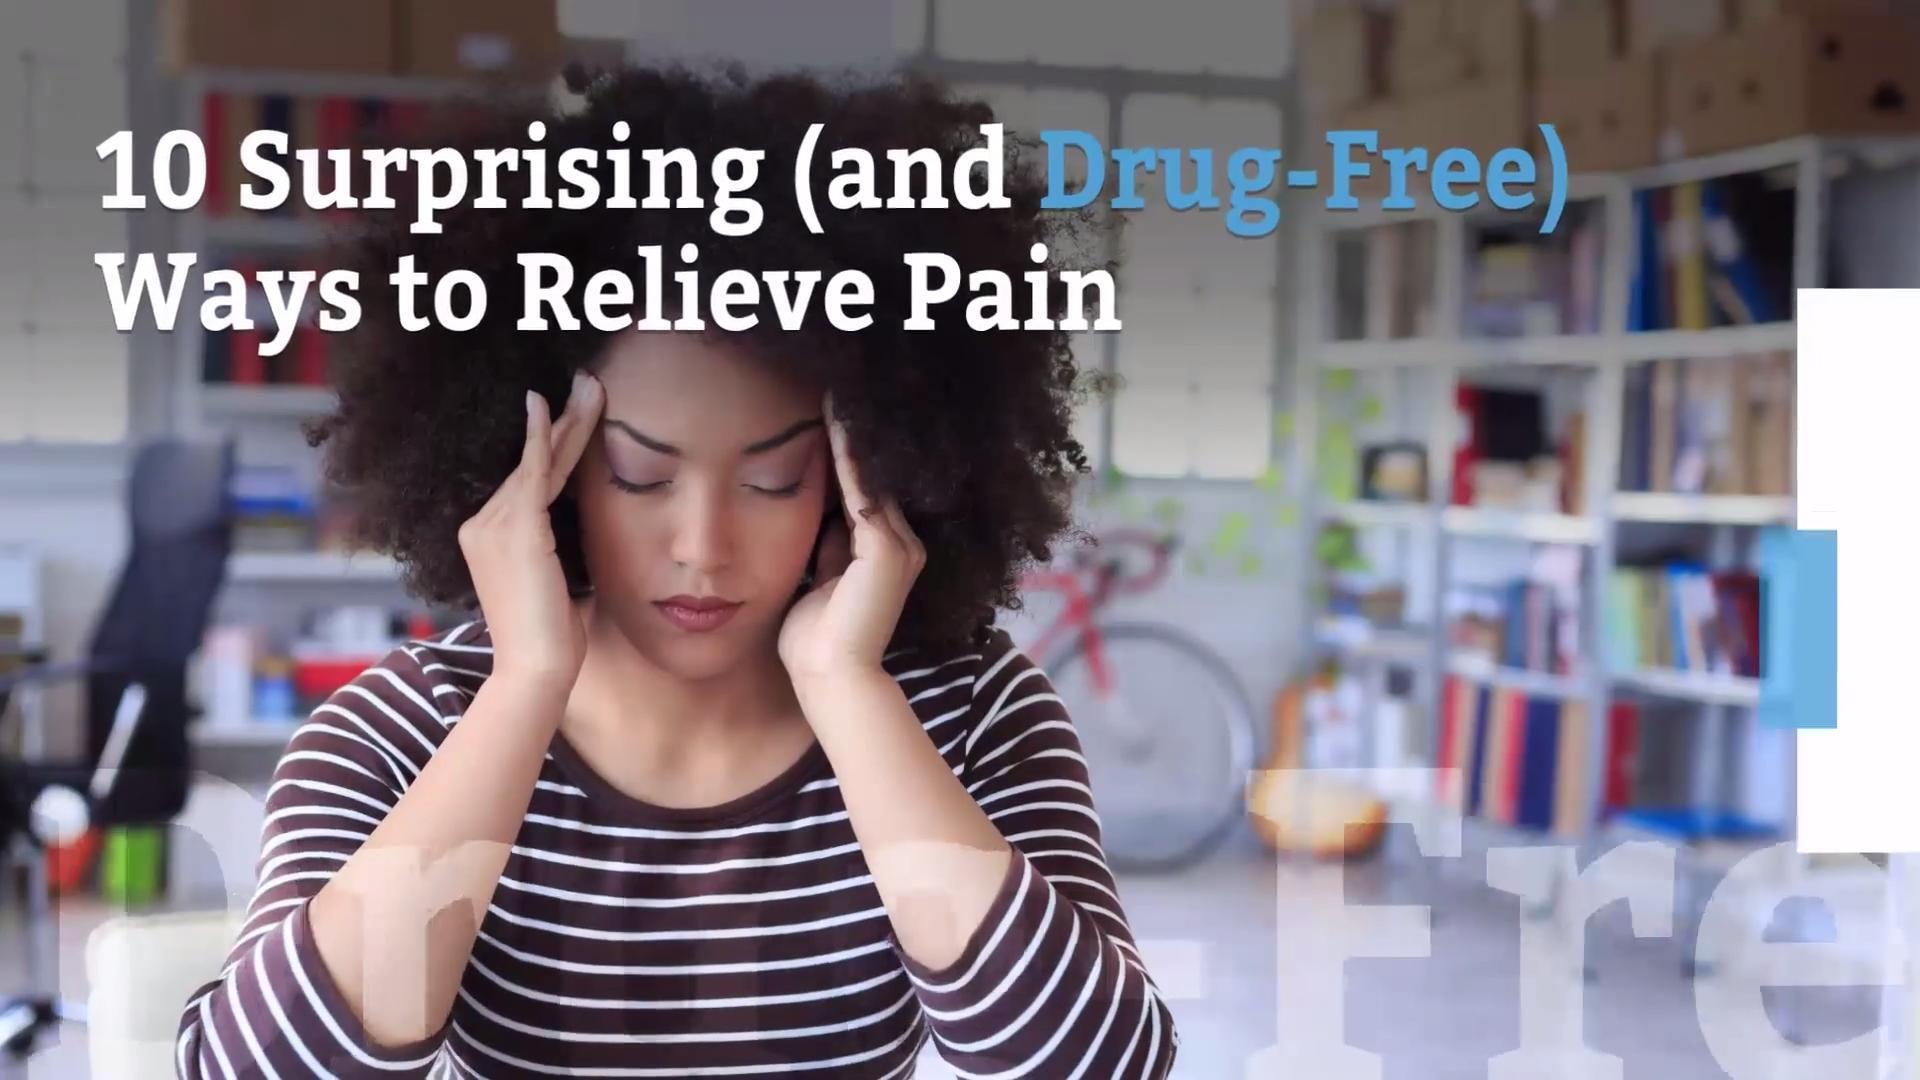 Natural ways to manage pain